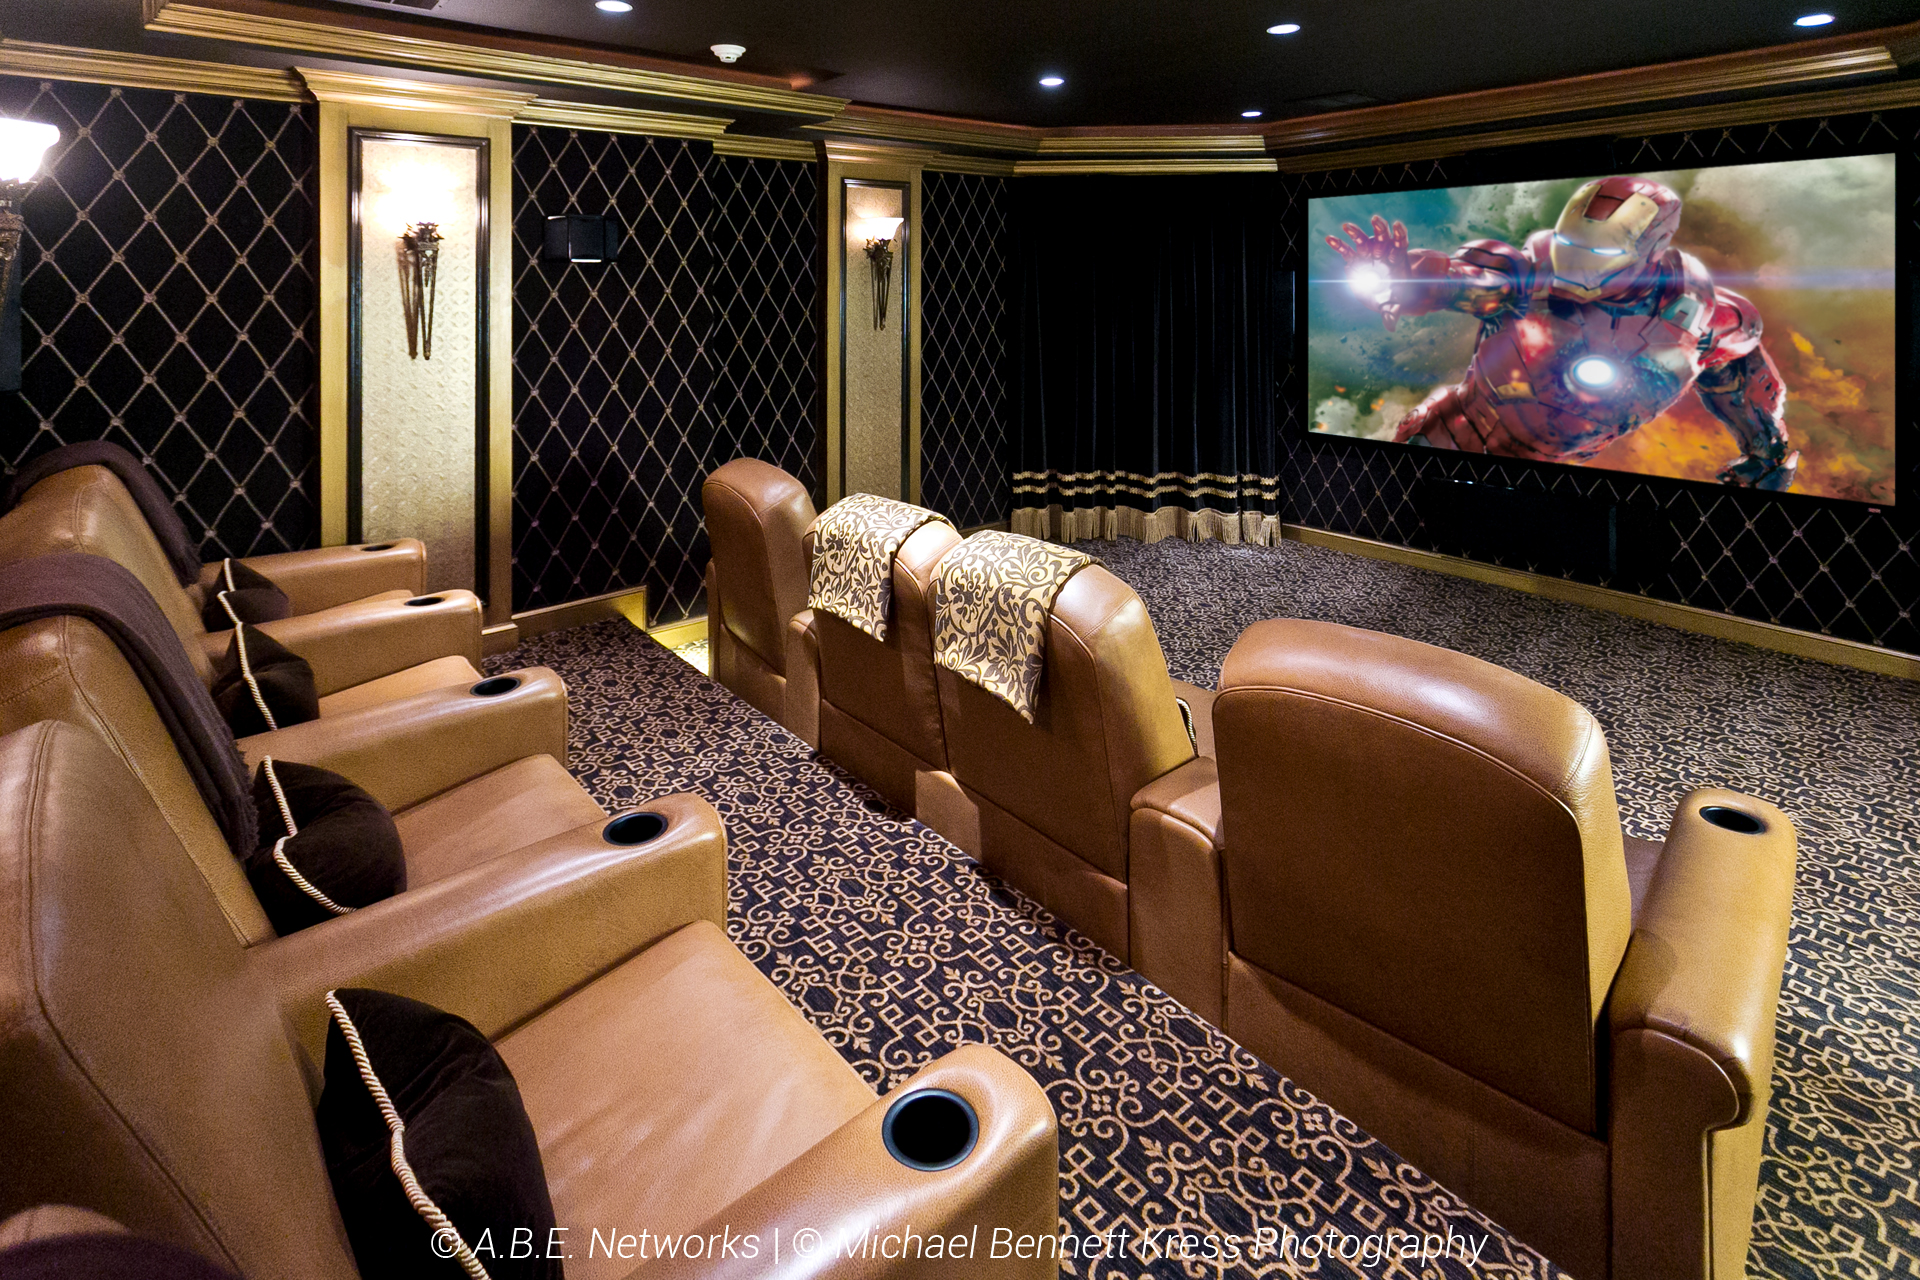 Home Theather_Fortress Seating_Draper Screen_Sunfire Speakers